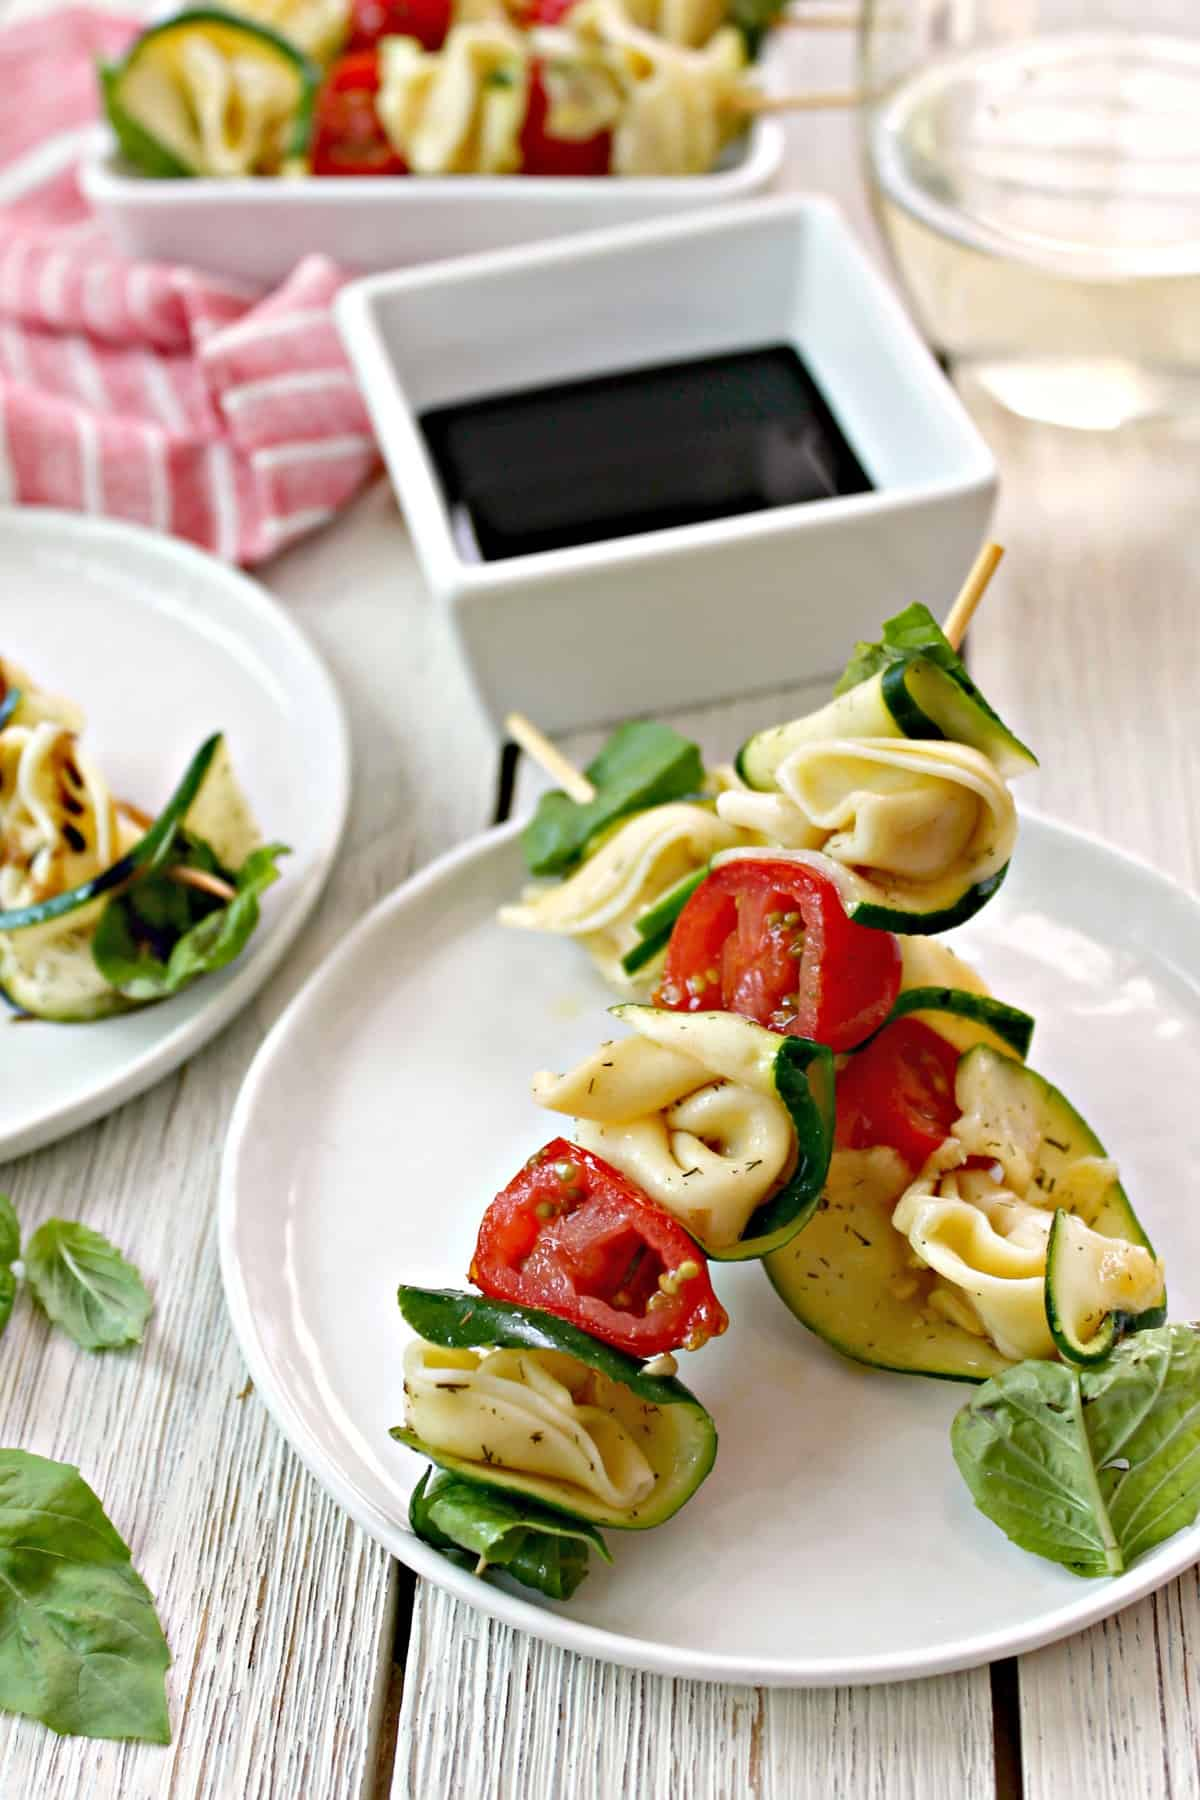 These delicious Zucchini & Tortellini Skewers are simple, fresh appetizers that are perfect for a party